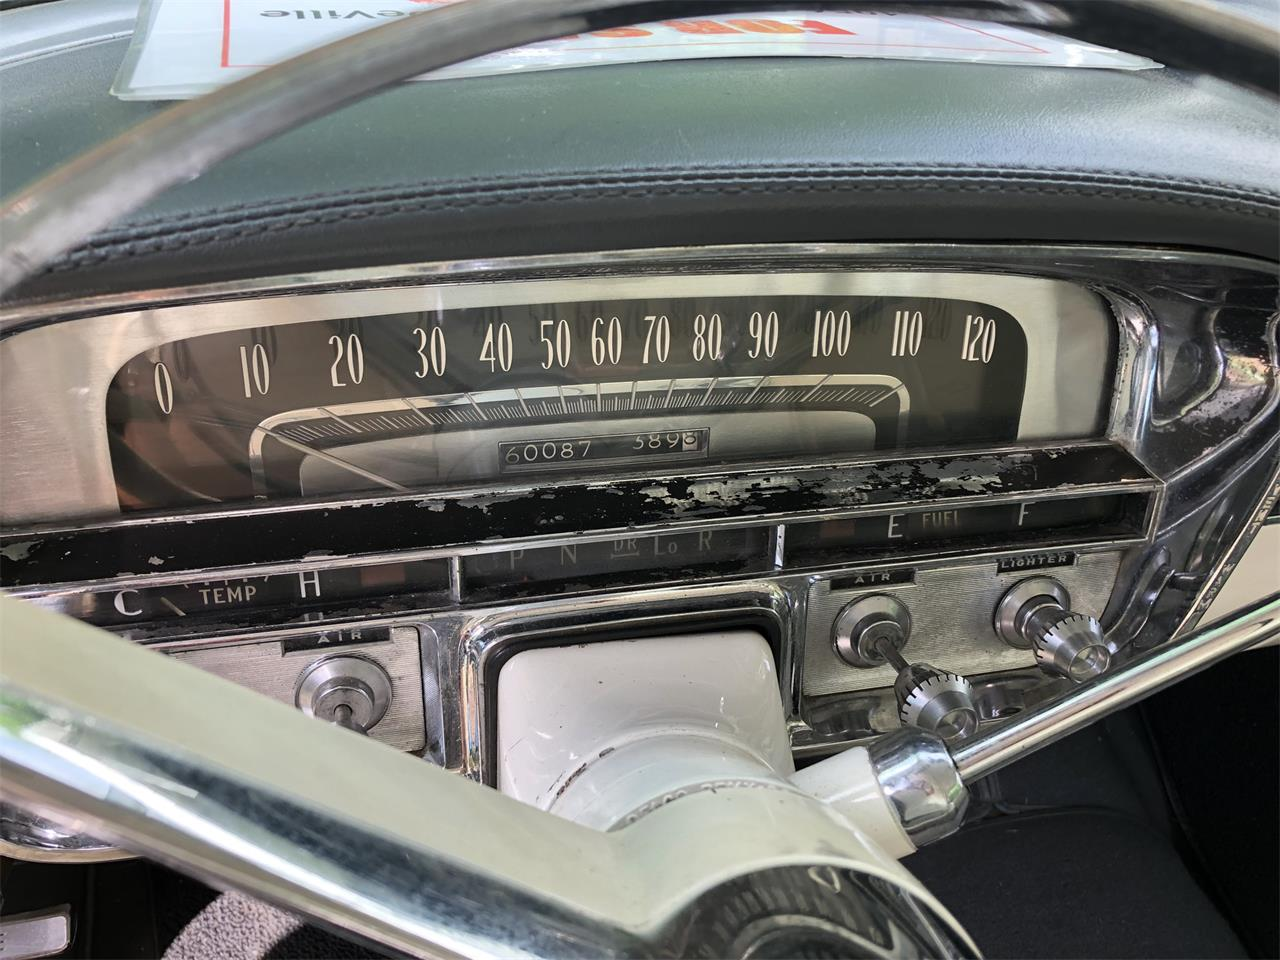 Large Picture of '56 Cadillac Coupe DeVille located in Georgia - $27,500.00 Offered by a Private Seller - Q1NT